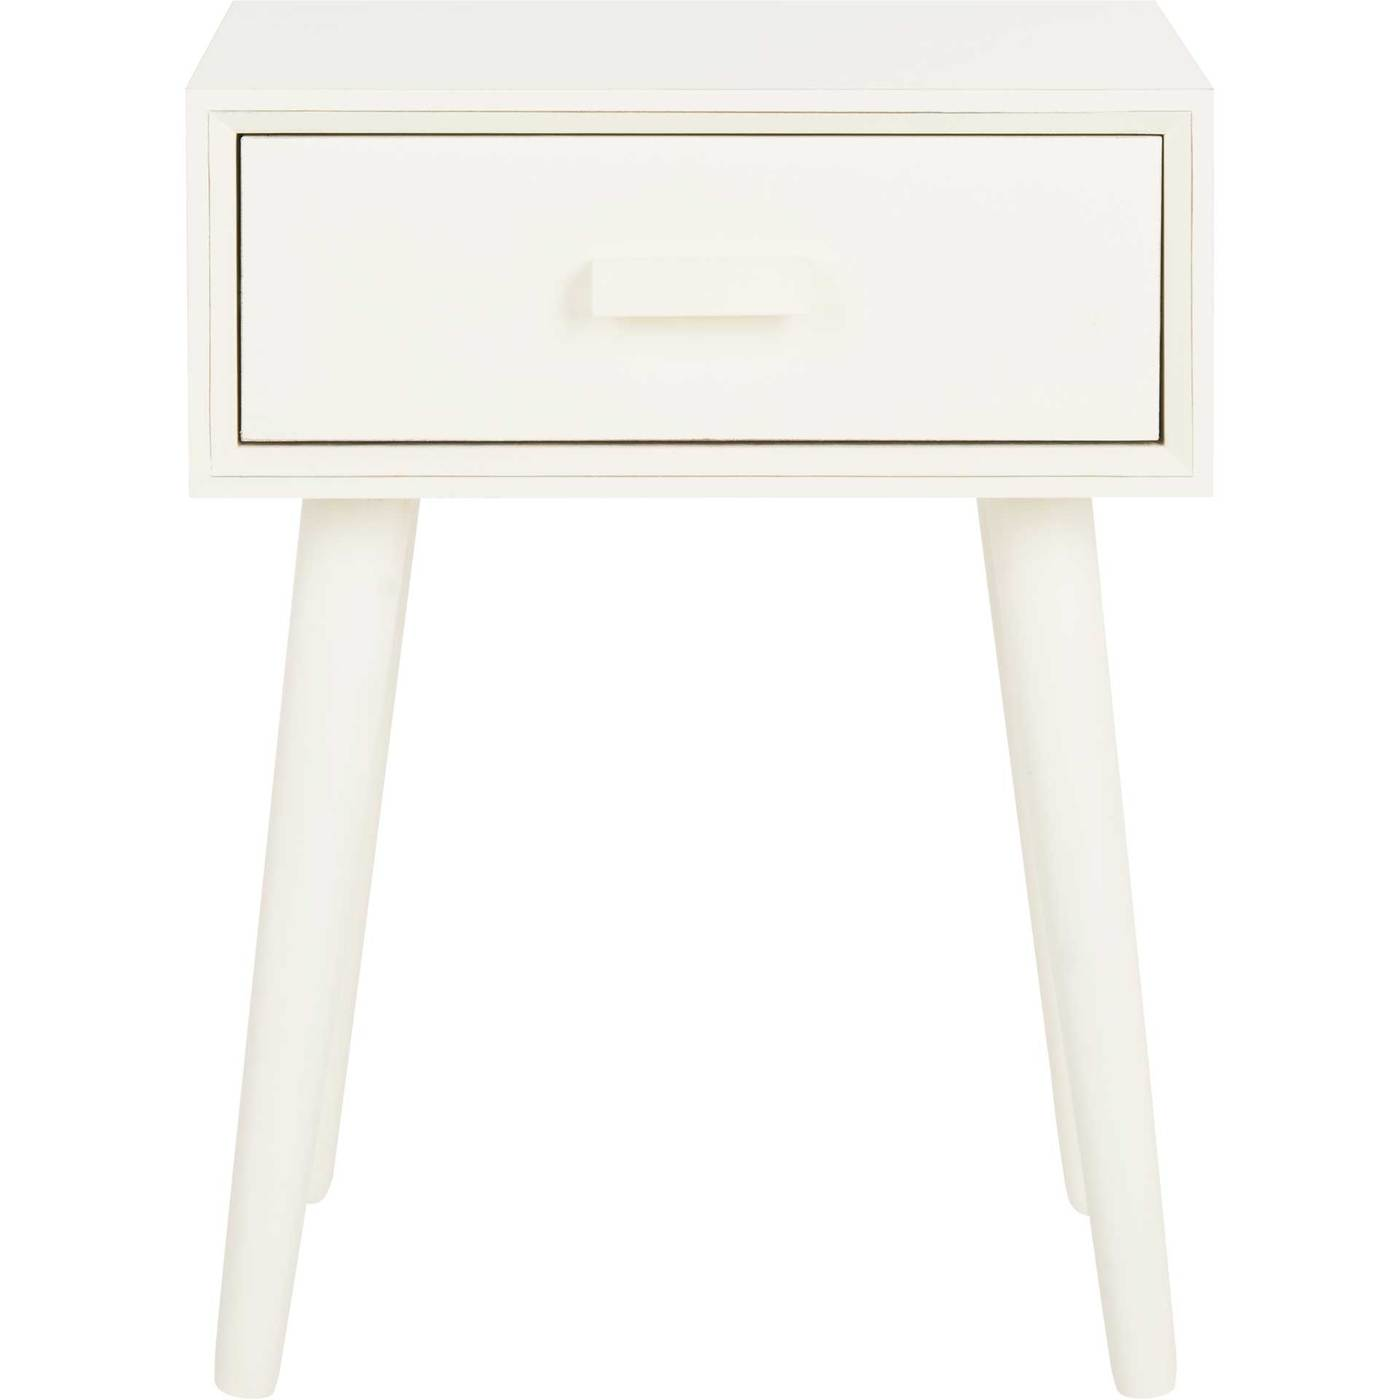 noss accent table froy front neelan round lyle distressed white screw wooden legs large garden umbrellas side storage cube luxury dining room furniture knotty pine desk cherry